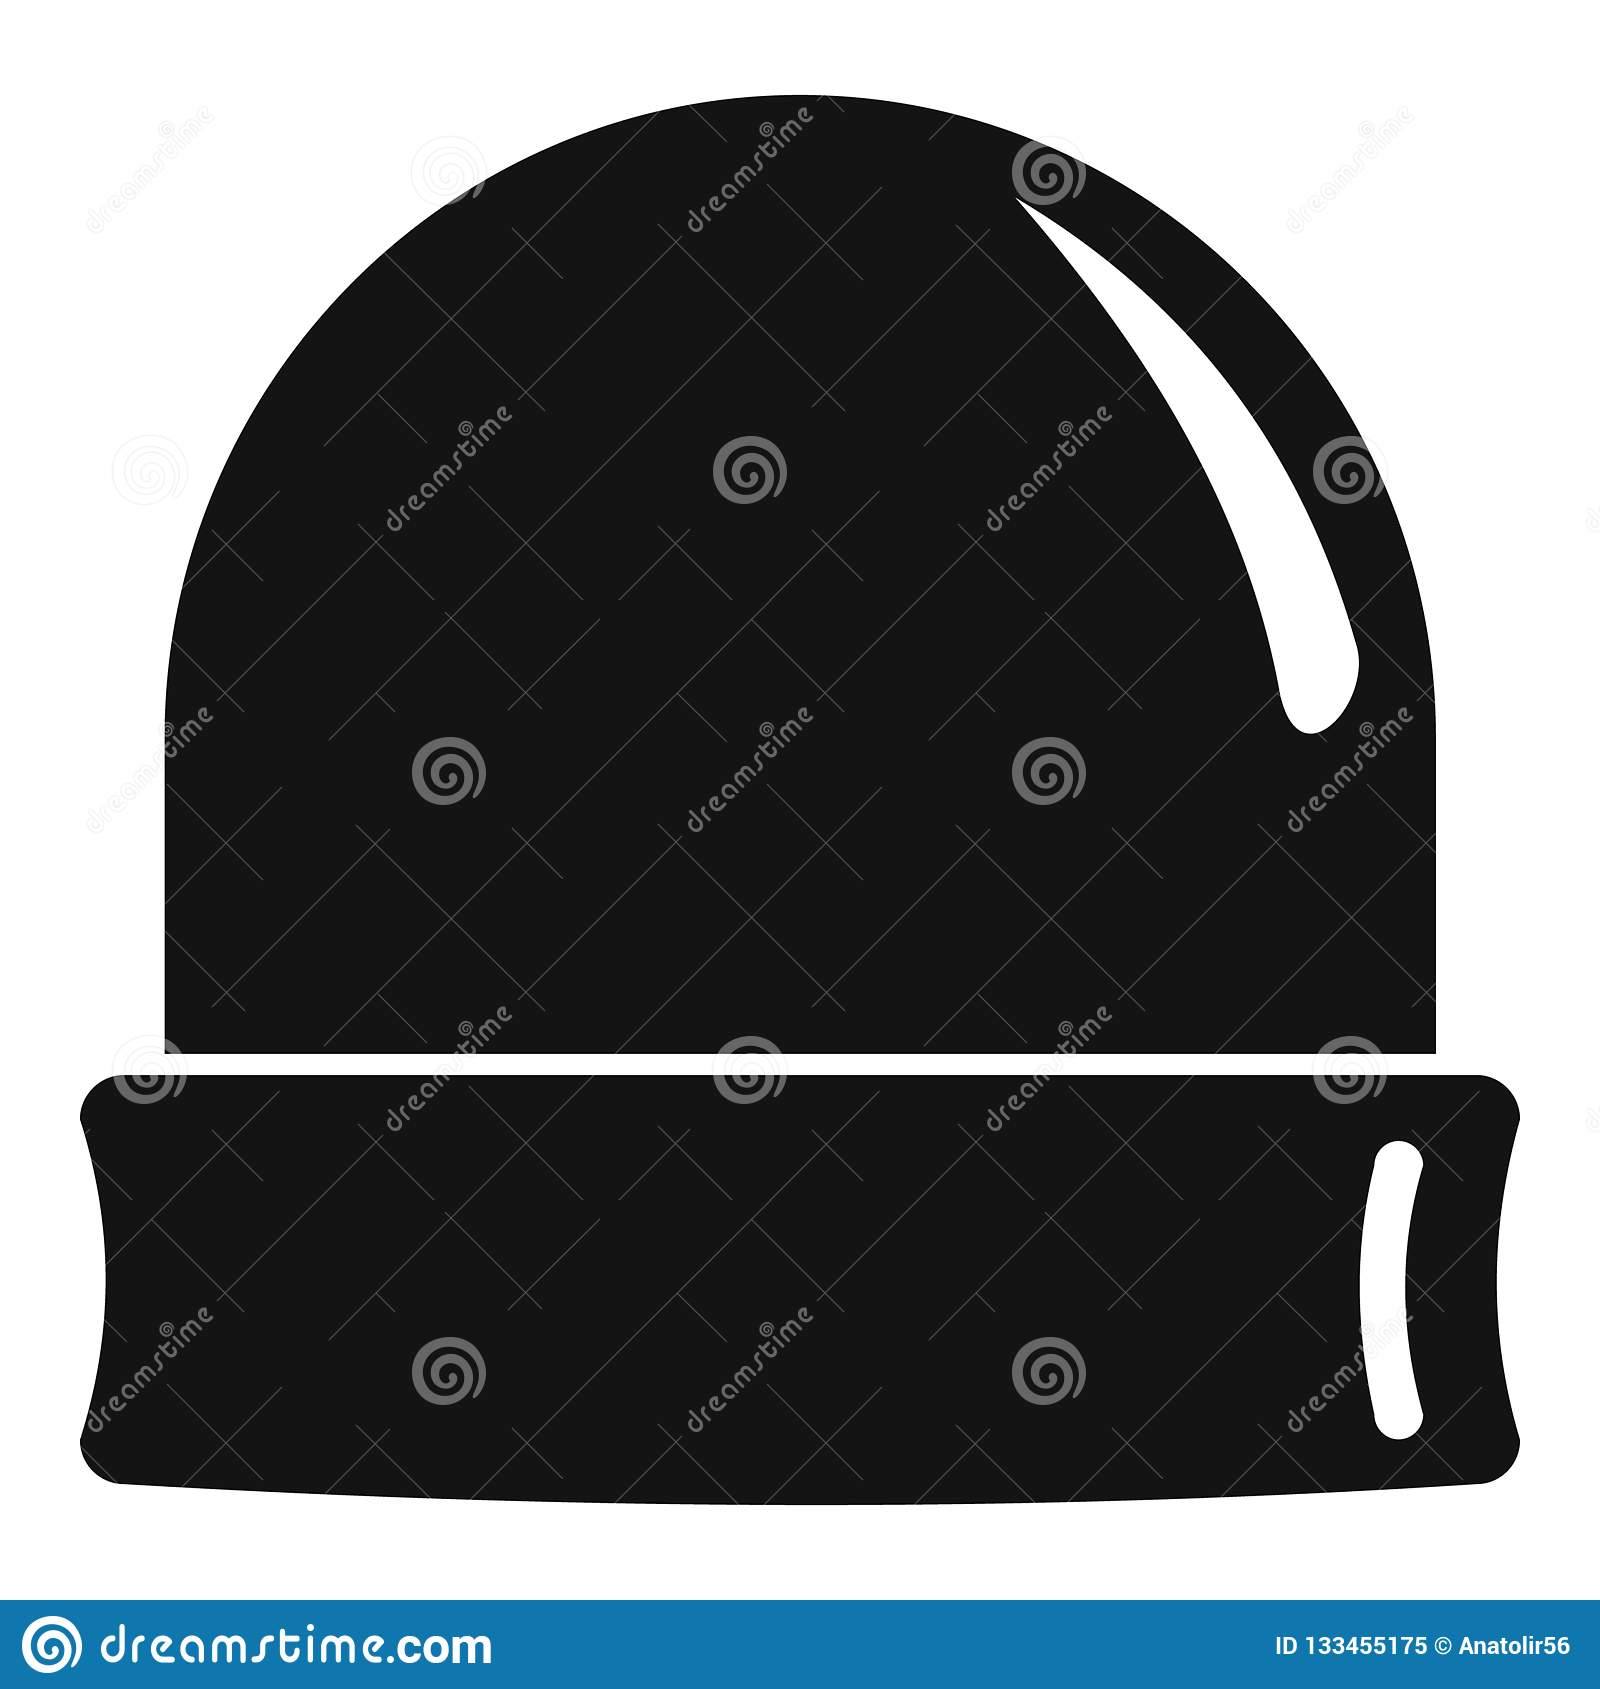 026f600c149 Black beanie icon. Simple illustration of black beanie vector icon for web  design isolated on white background